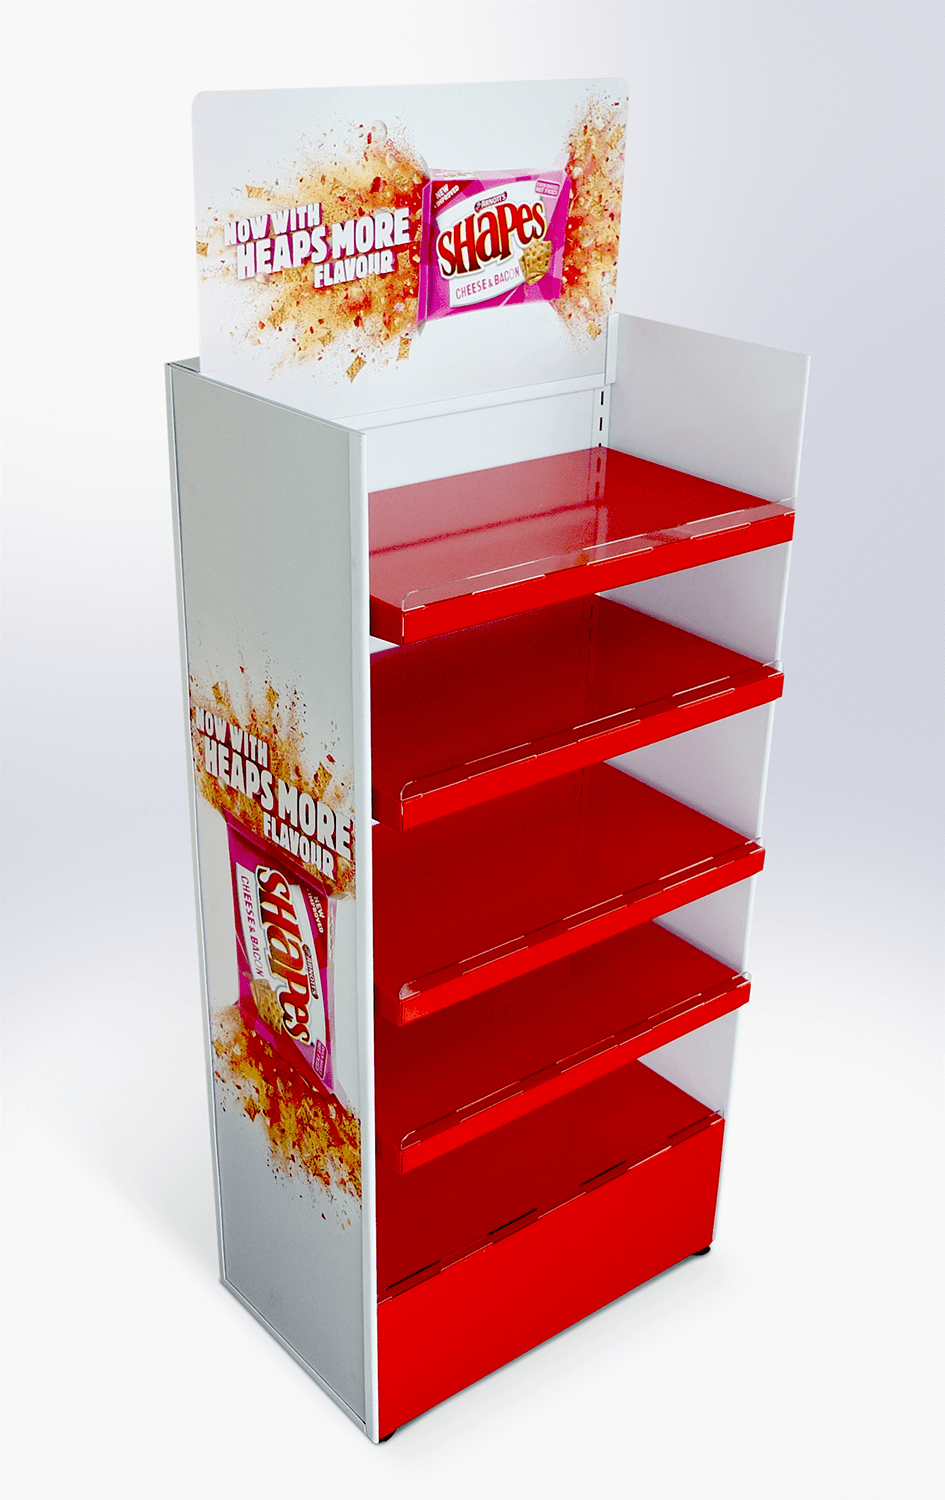 Steel floor shelving unit with adjustable shelves Display design and manufacture | Visuals | Art | Print